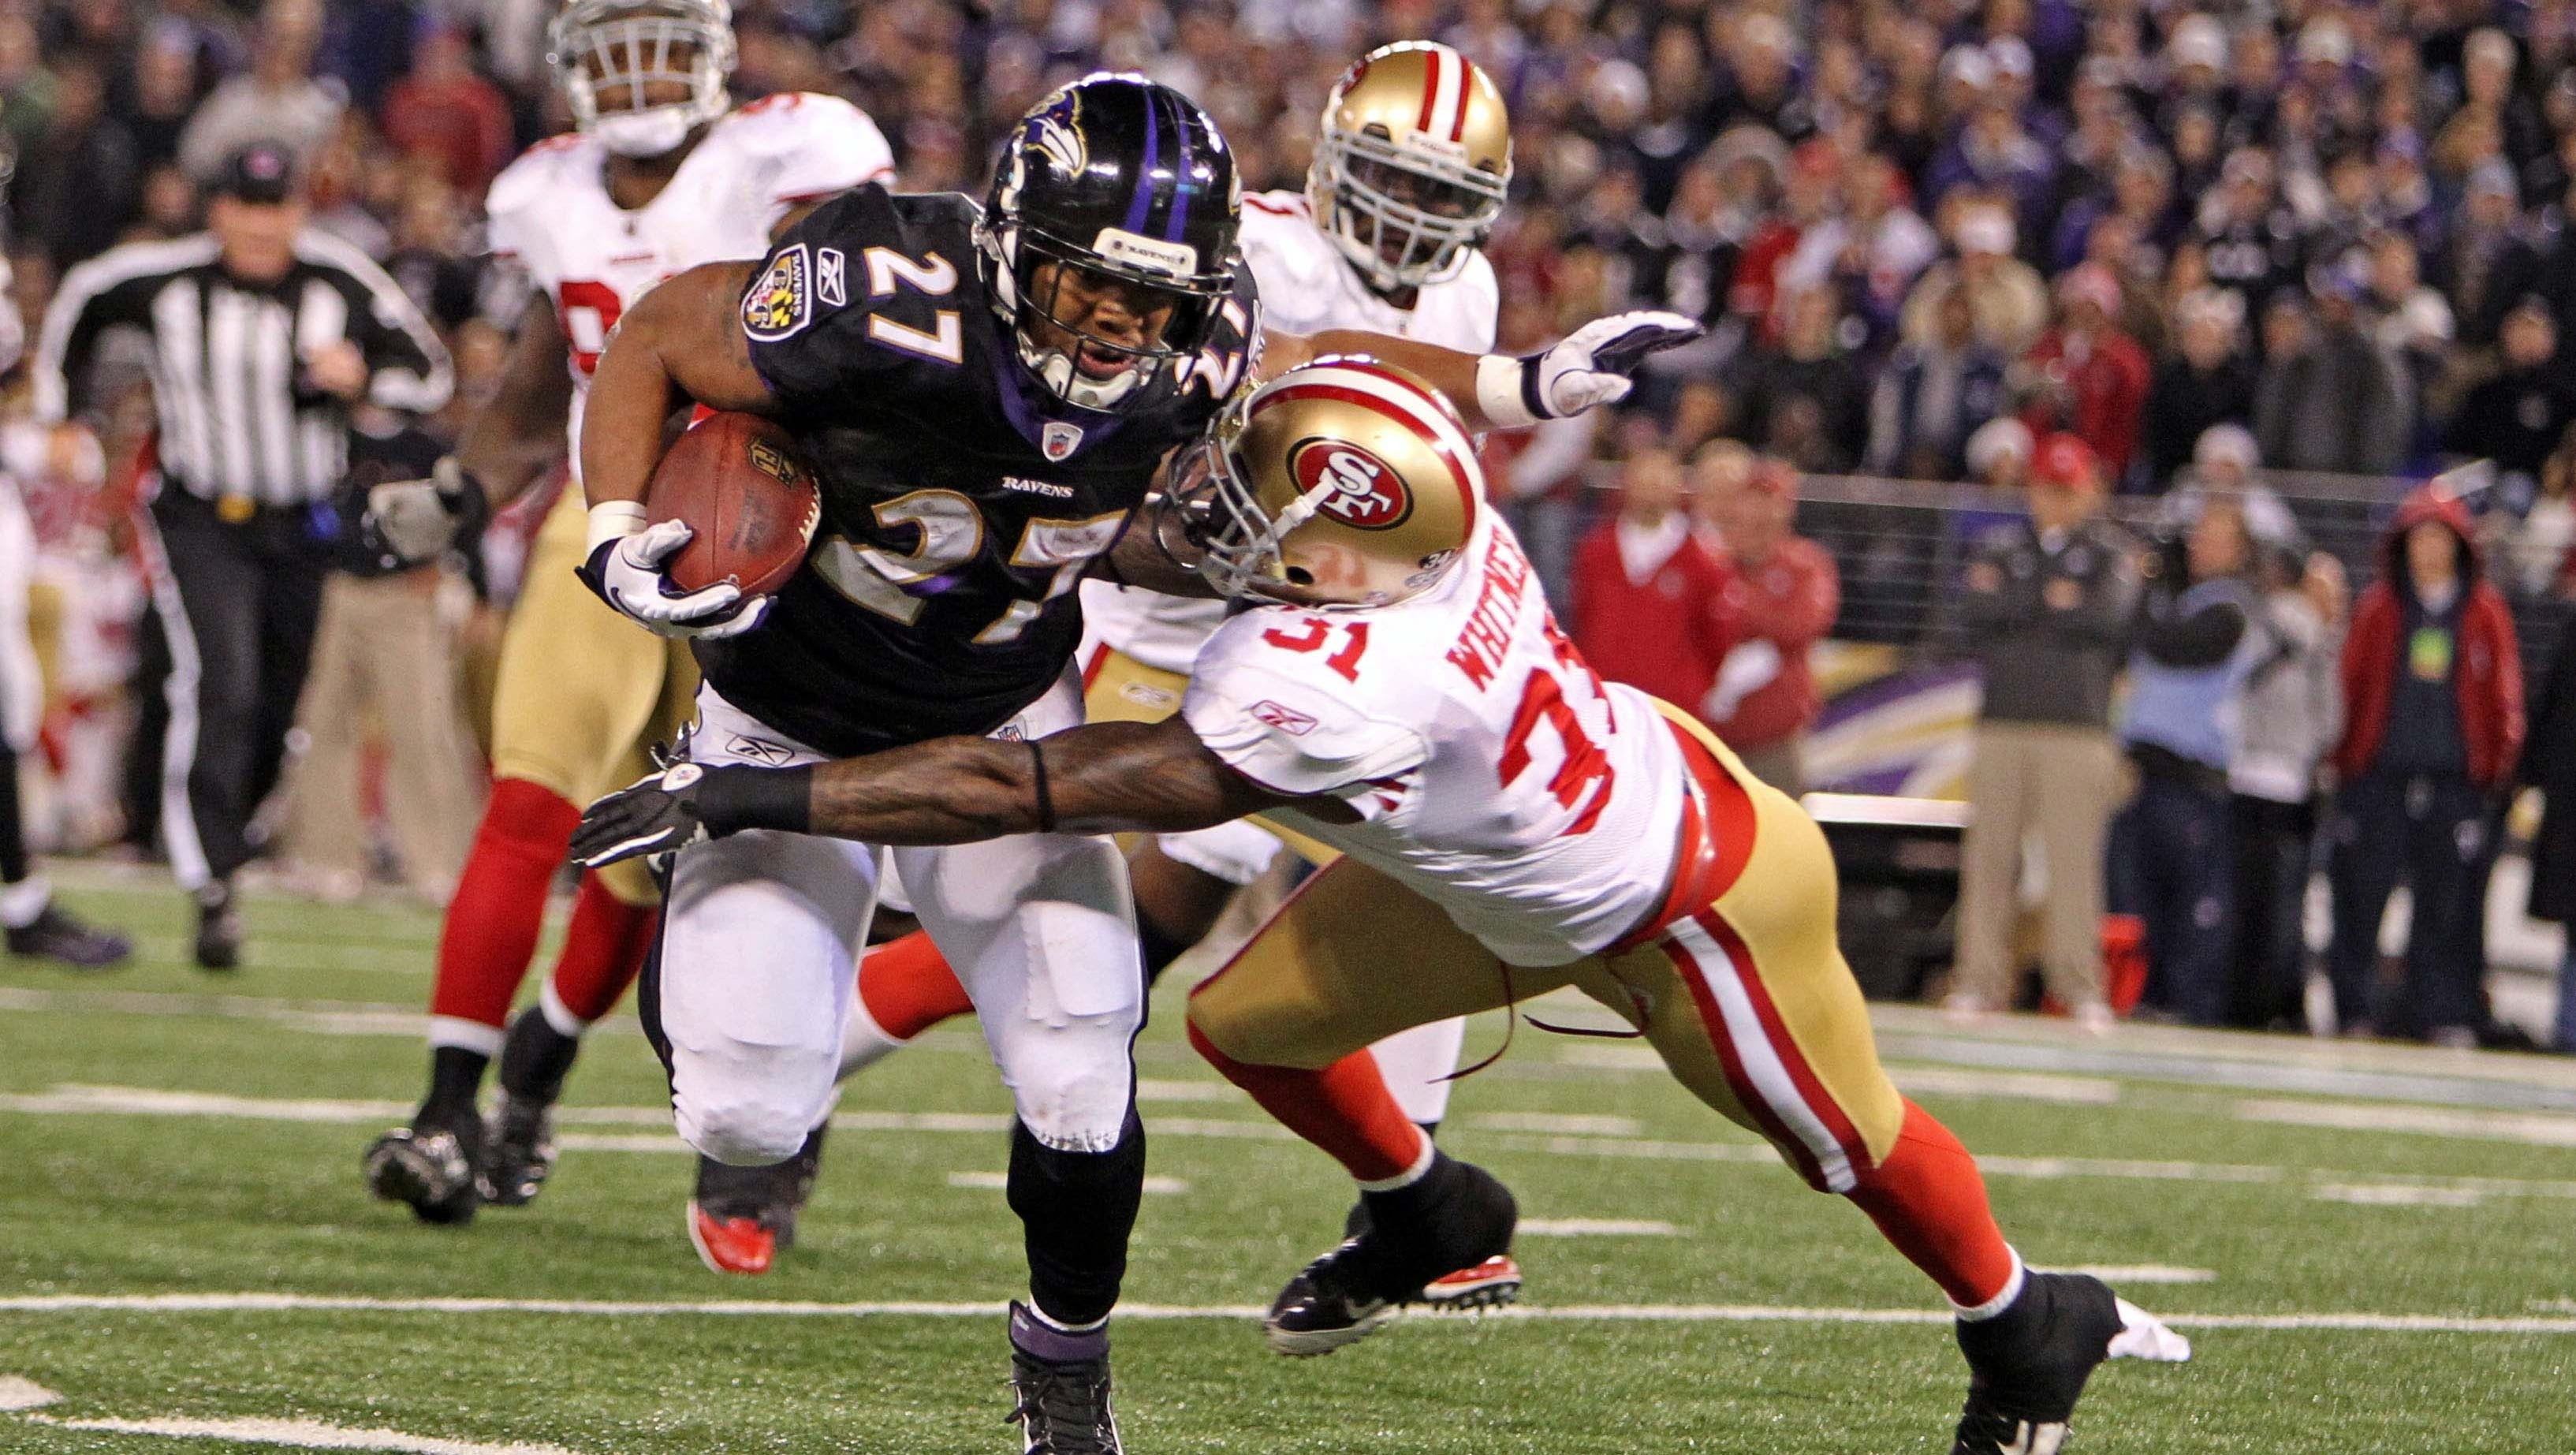 49ers ravens line betting on favorite fixed odds betting terminals manufacturers supply company